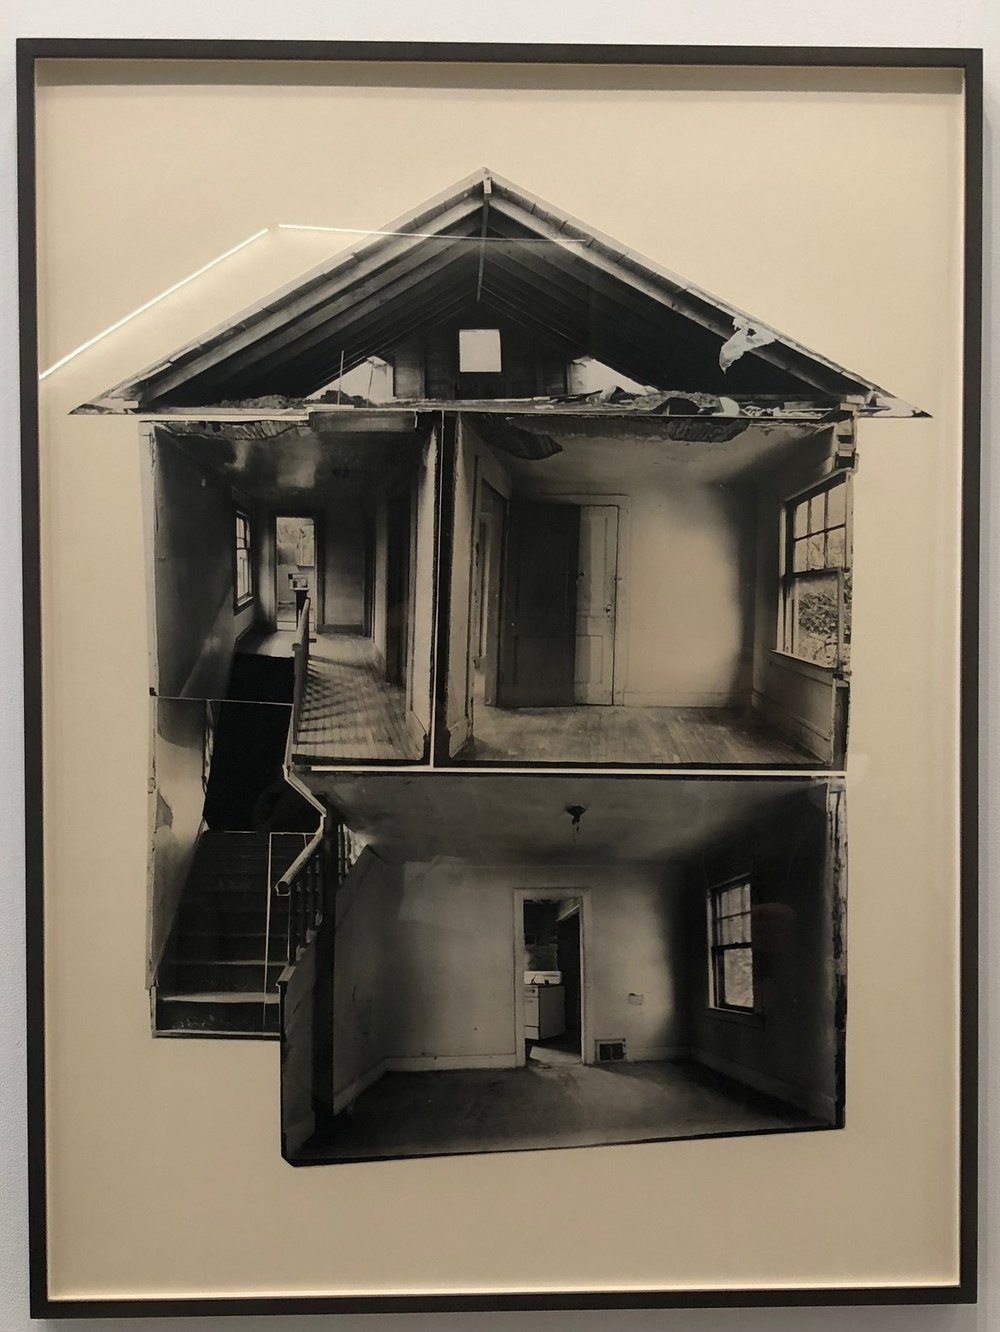 Gordon Matta-Clark at David Zwirner Gallery